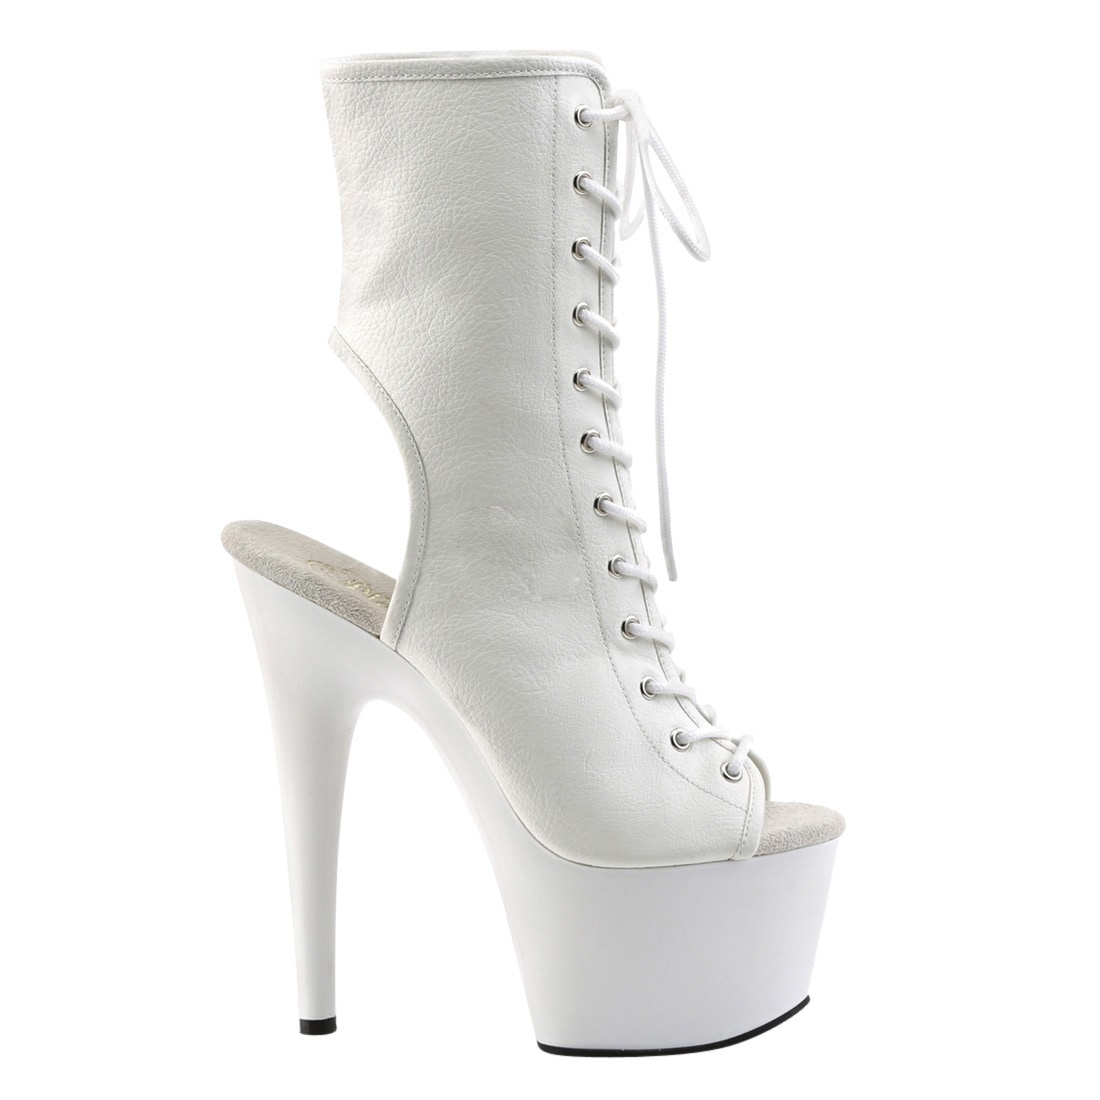 8566b57d276ca Shop Pleaser ADORE-1016 Women's Platform Open Toe/Heel Side Zip Lace-Up Ankle  Boot - Free Shipping Today - Overstock - 16569841